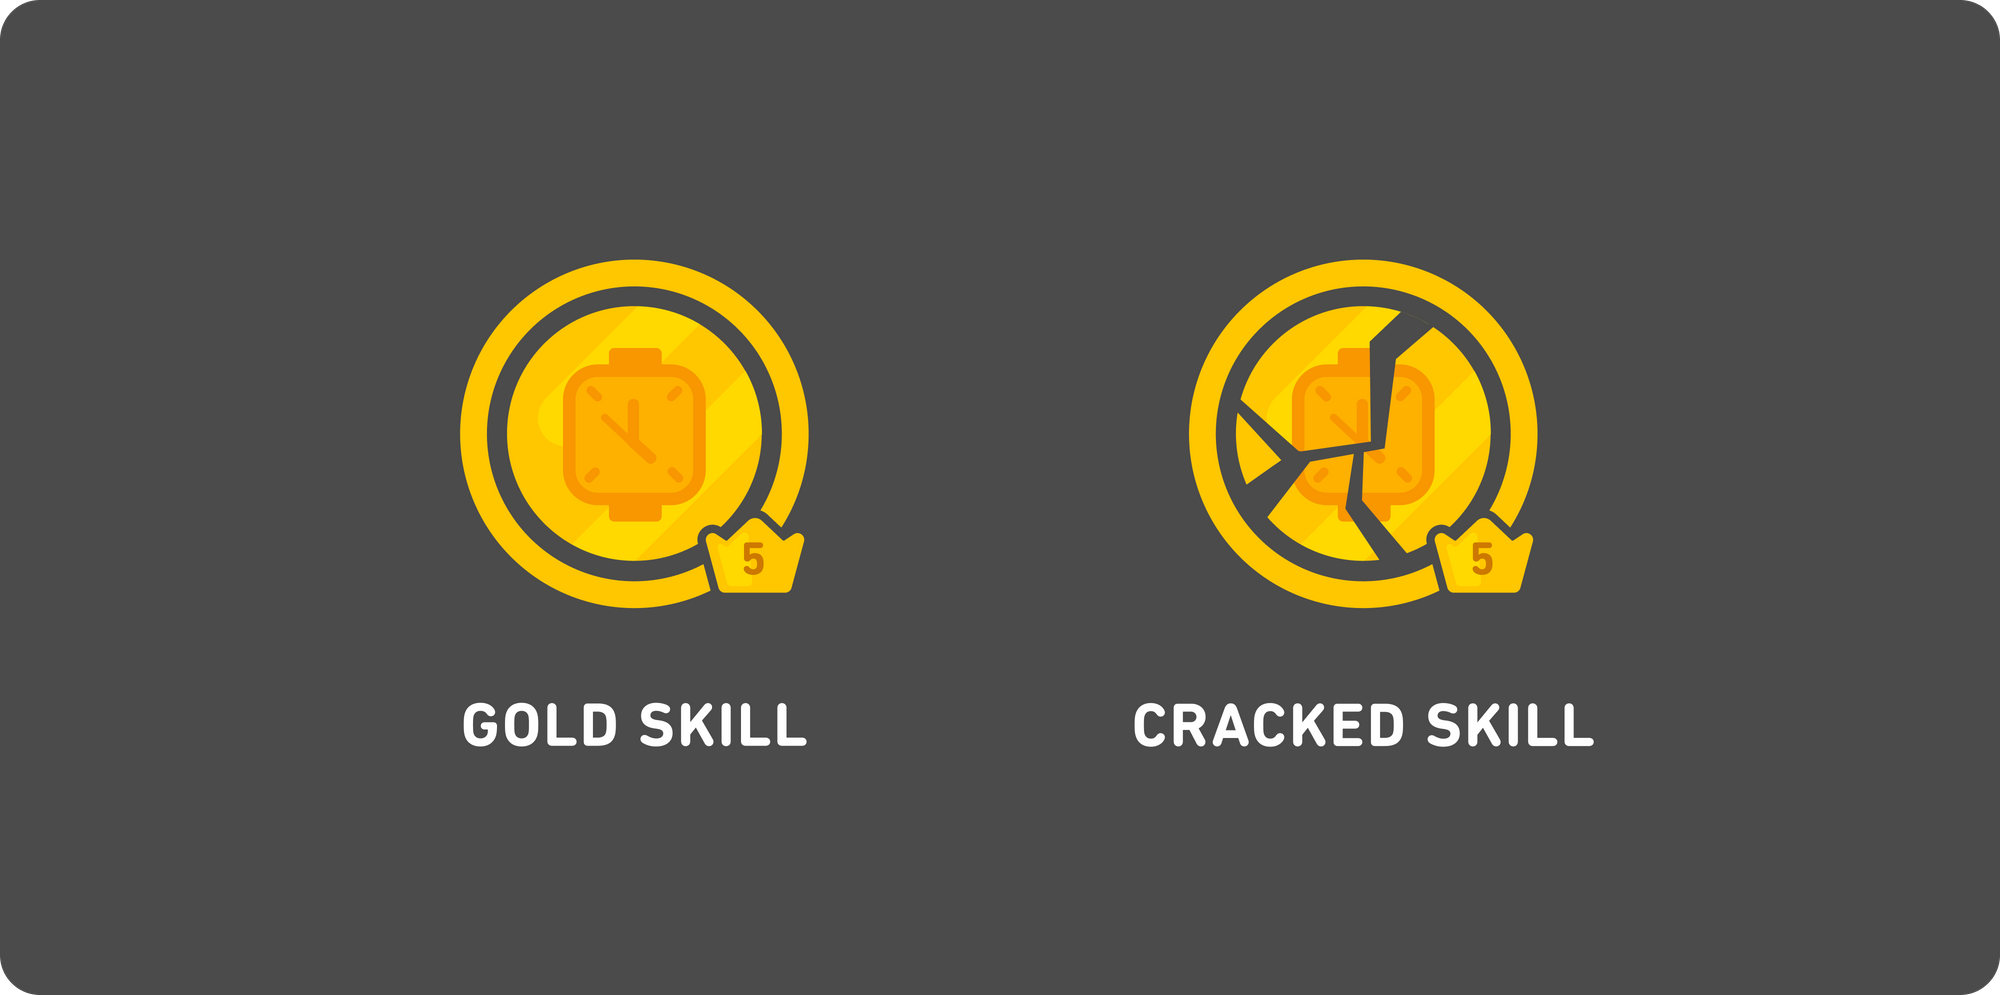 """Illustration of two gold Duolingo """"skills"""" side-by-side. The left one is labeled """"Gold skill"""" and the whole circle and the progress bar around it is all solid gold. On the right is a """"cracked skill"""": the same skill circle and progress bar are all gold, but now it looks shattered, and there are several cracks all throughout the circle."""